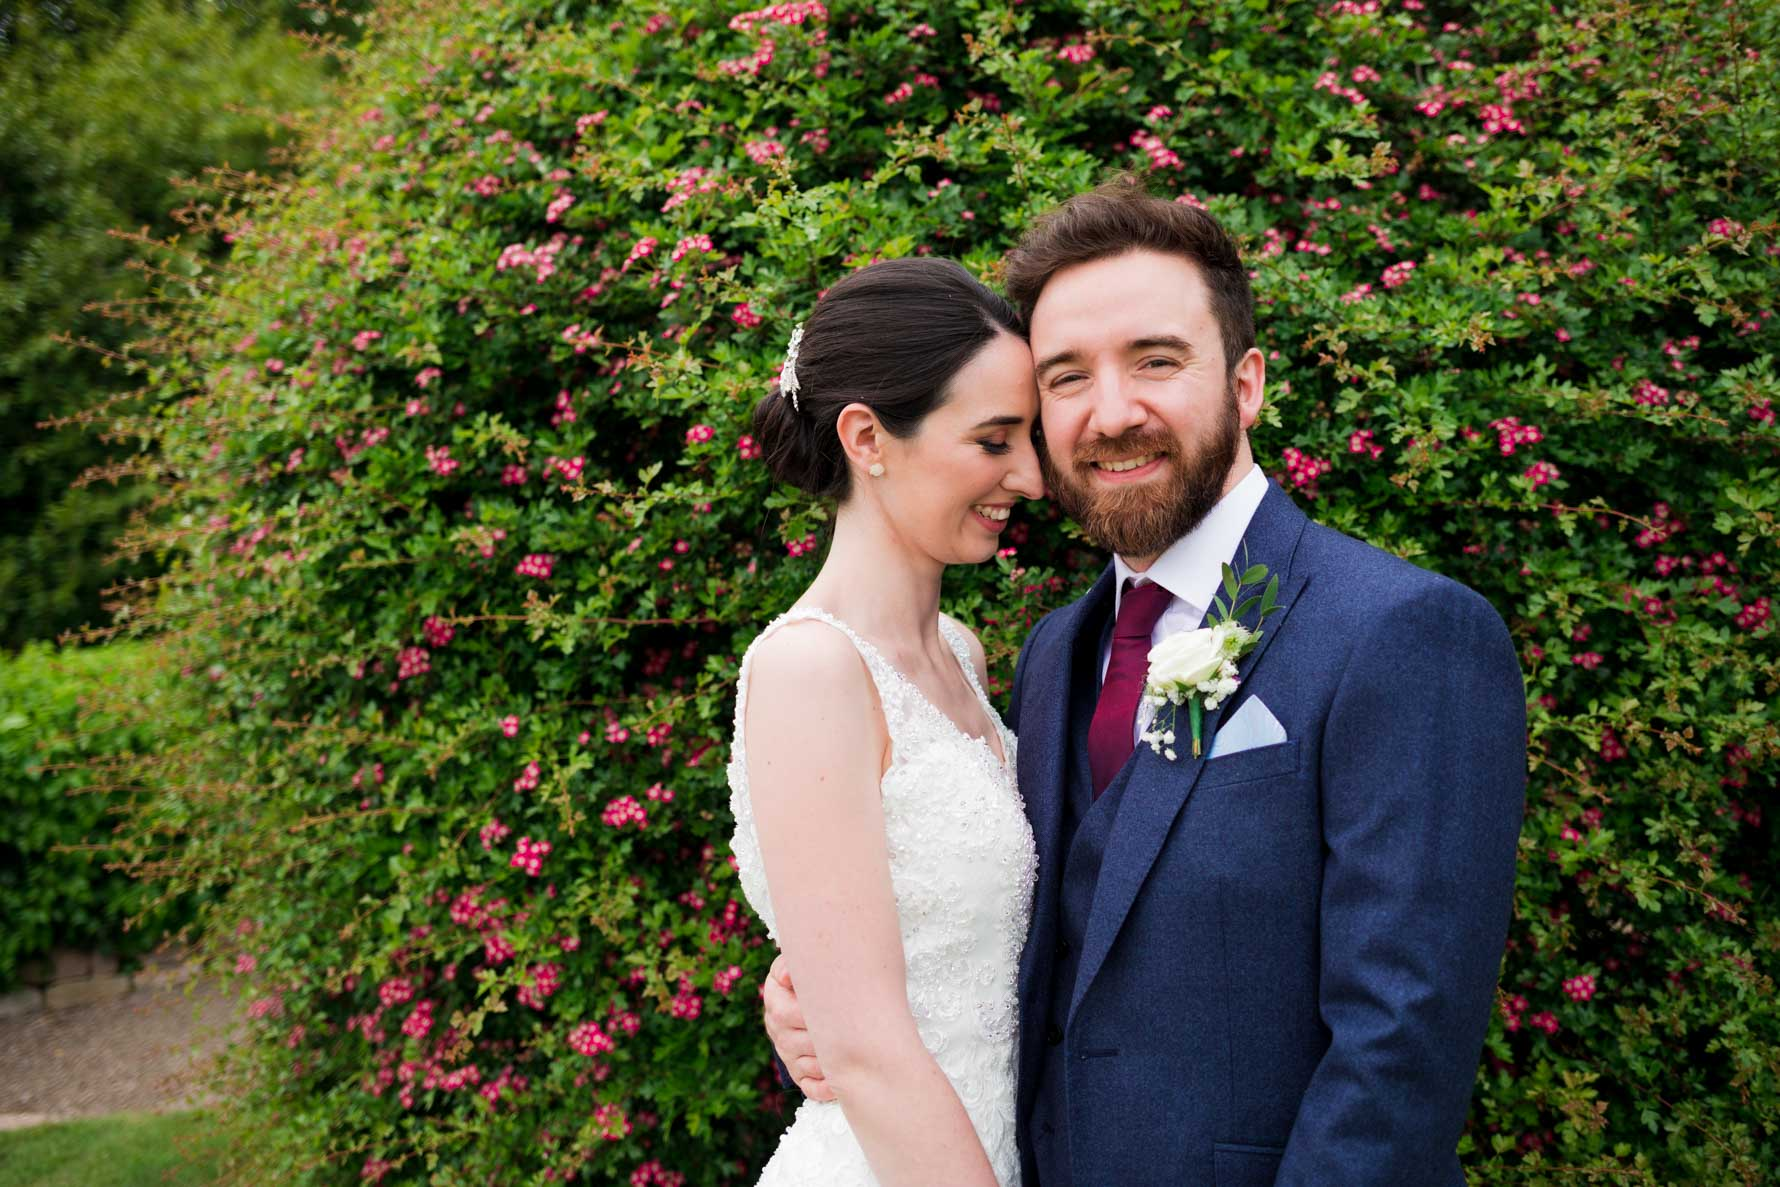 groom and bride in front of green bush with pink flowers